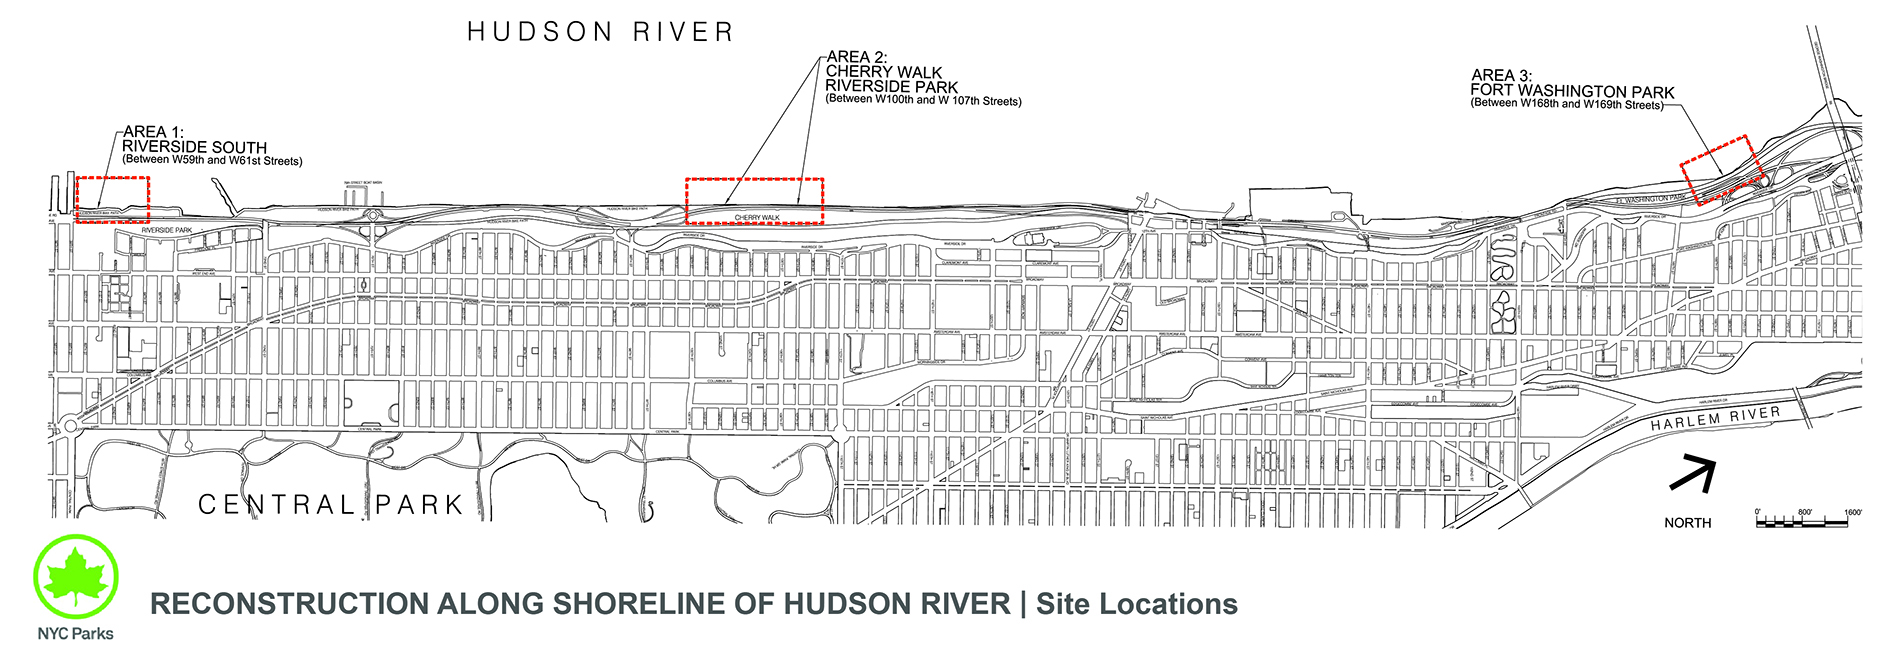 Design of Riverside Park and Fort Washington Park Pathway Reconstruction (Hurricane Sandy)